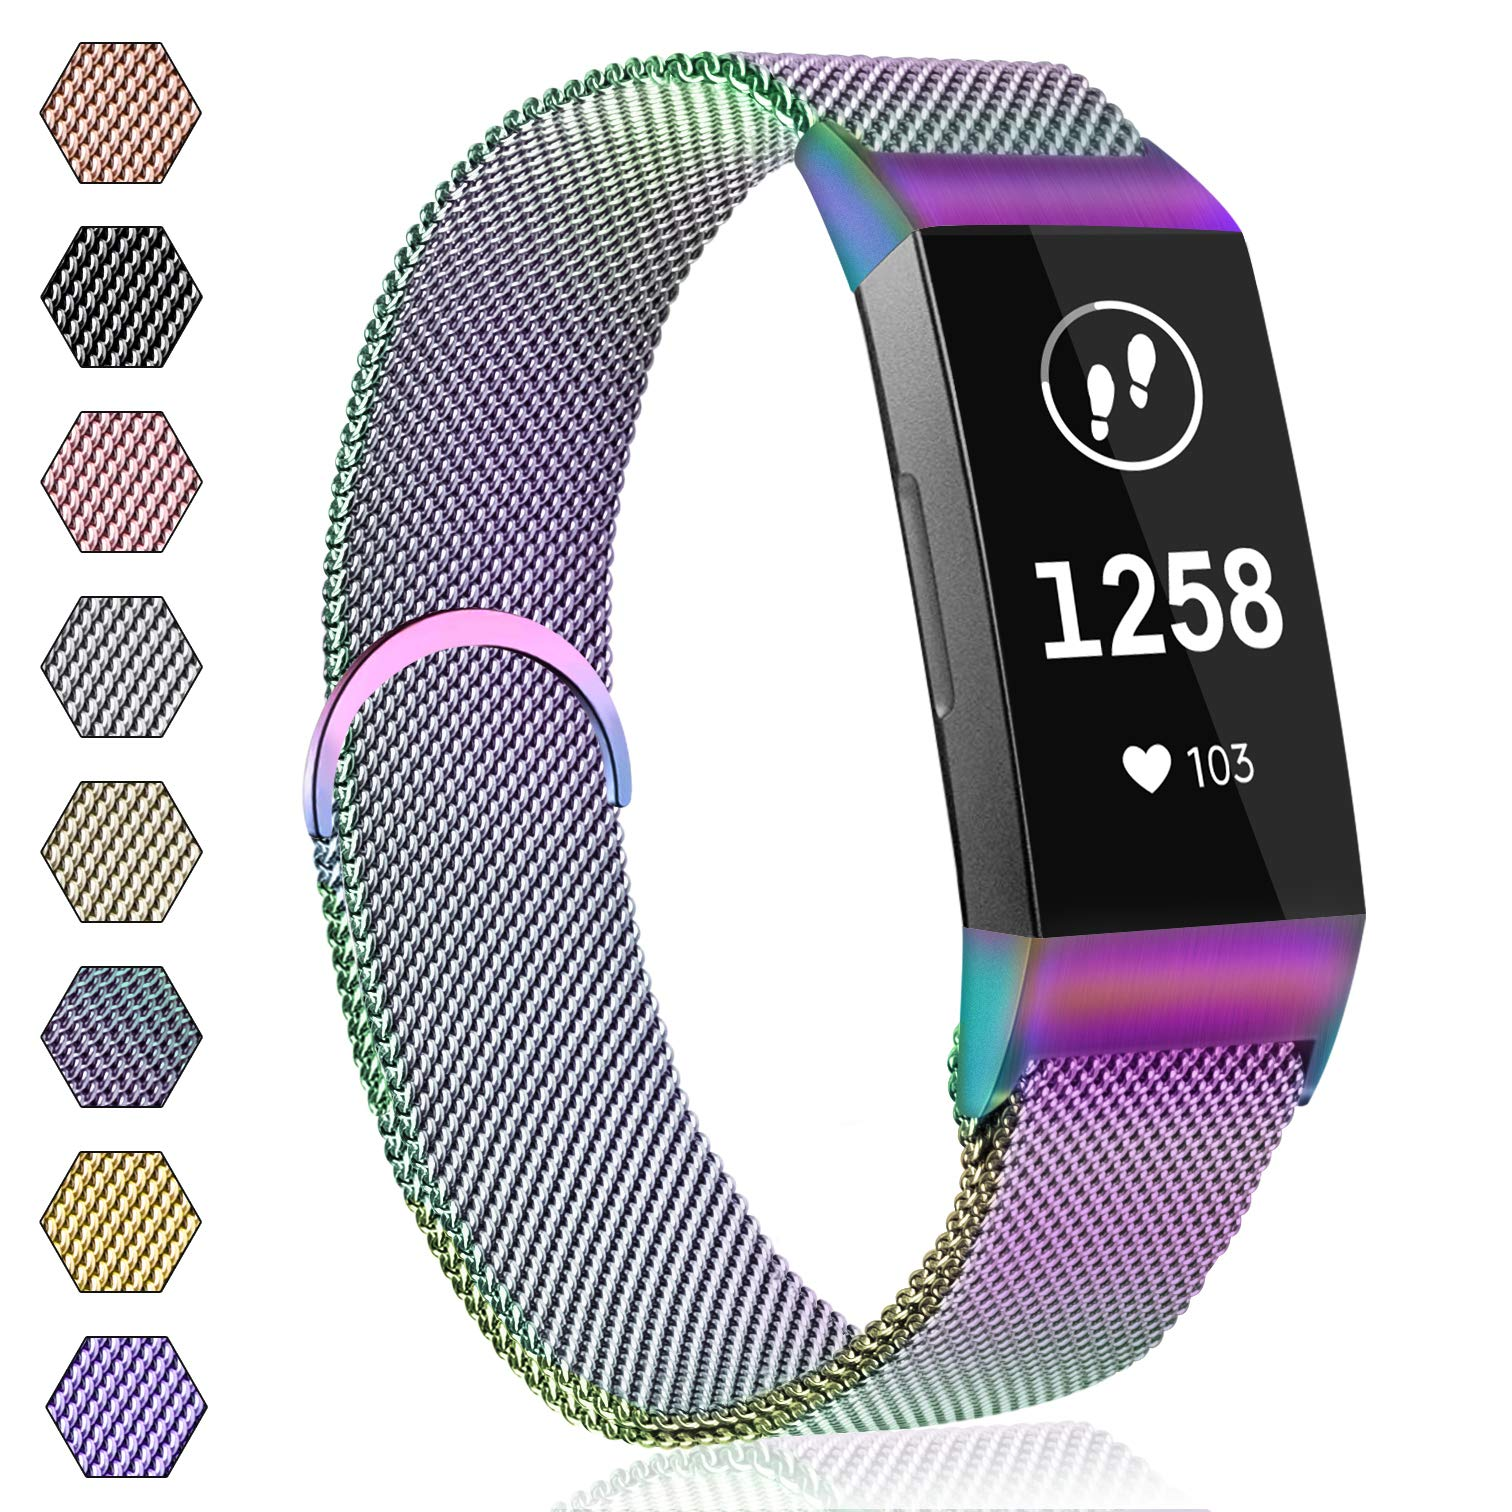 AK Strap Compatible with Fitbit Charge 3/Charge 3 SE, Metal Loop Stainless Steel Adjustable Replacement Bands with Magnetic Closure for Fitbit Charge 3 Small Large Women Men